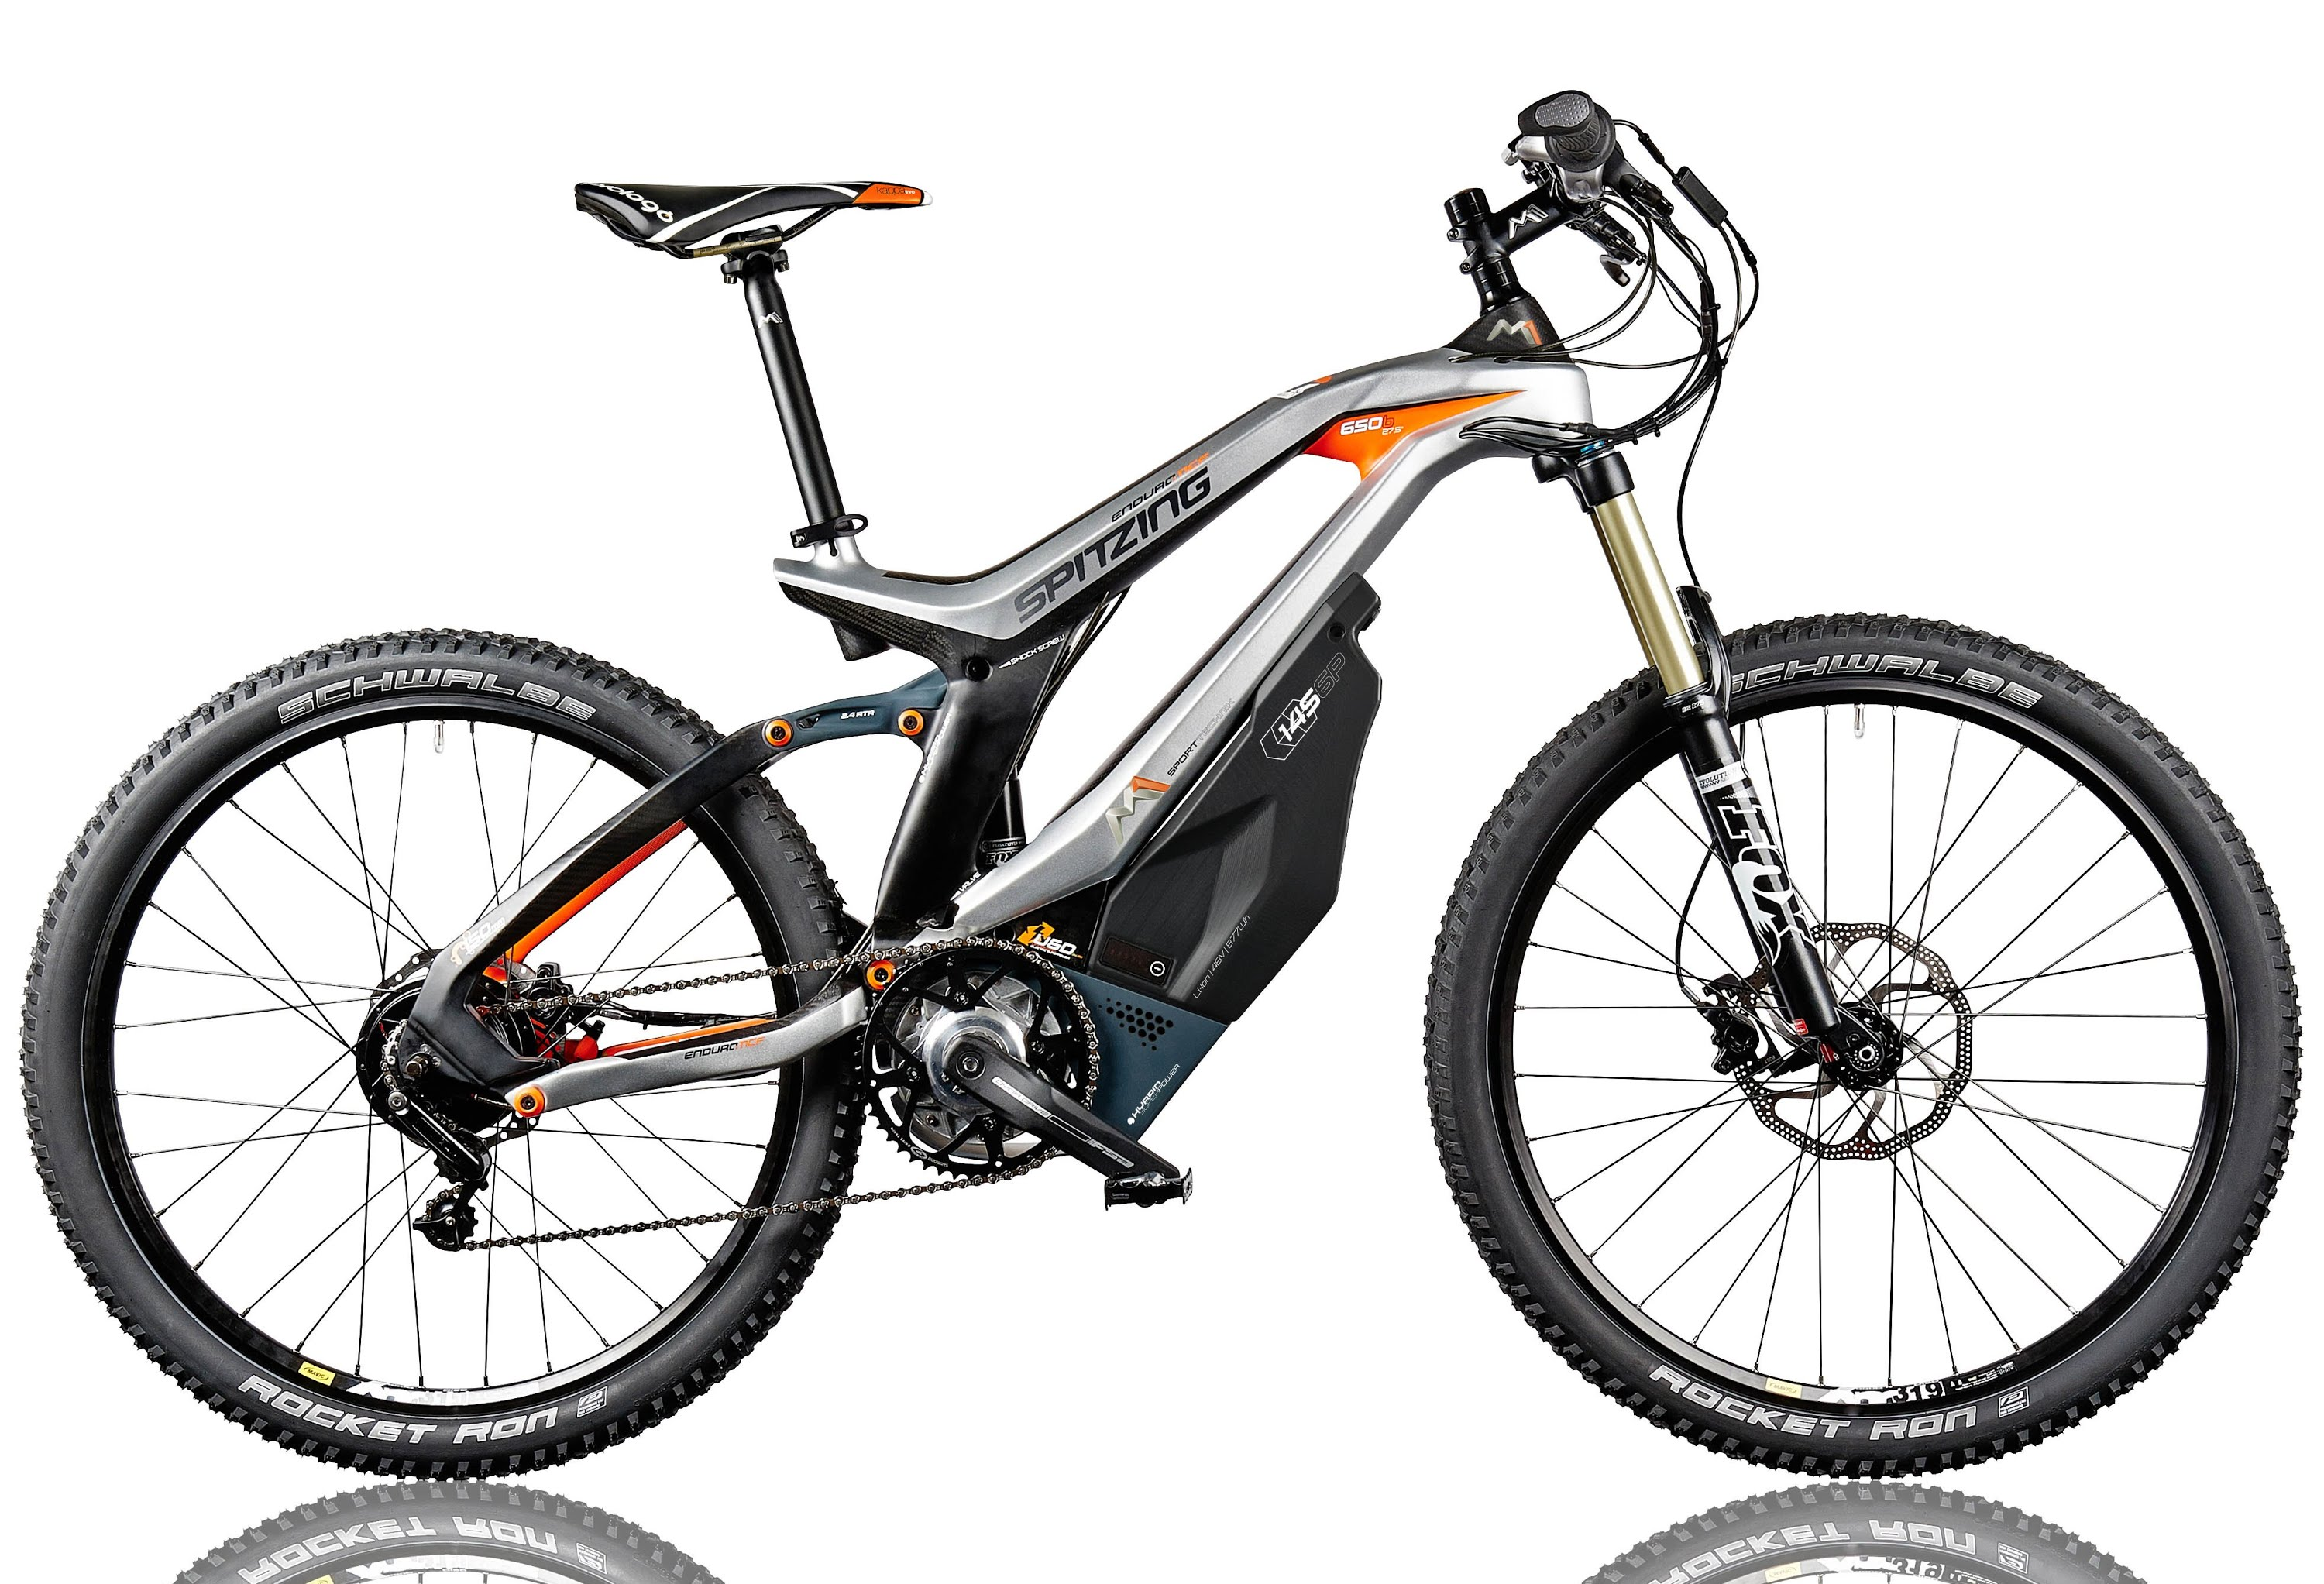 In 10 Years There Will No More Mtbs Without Electric